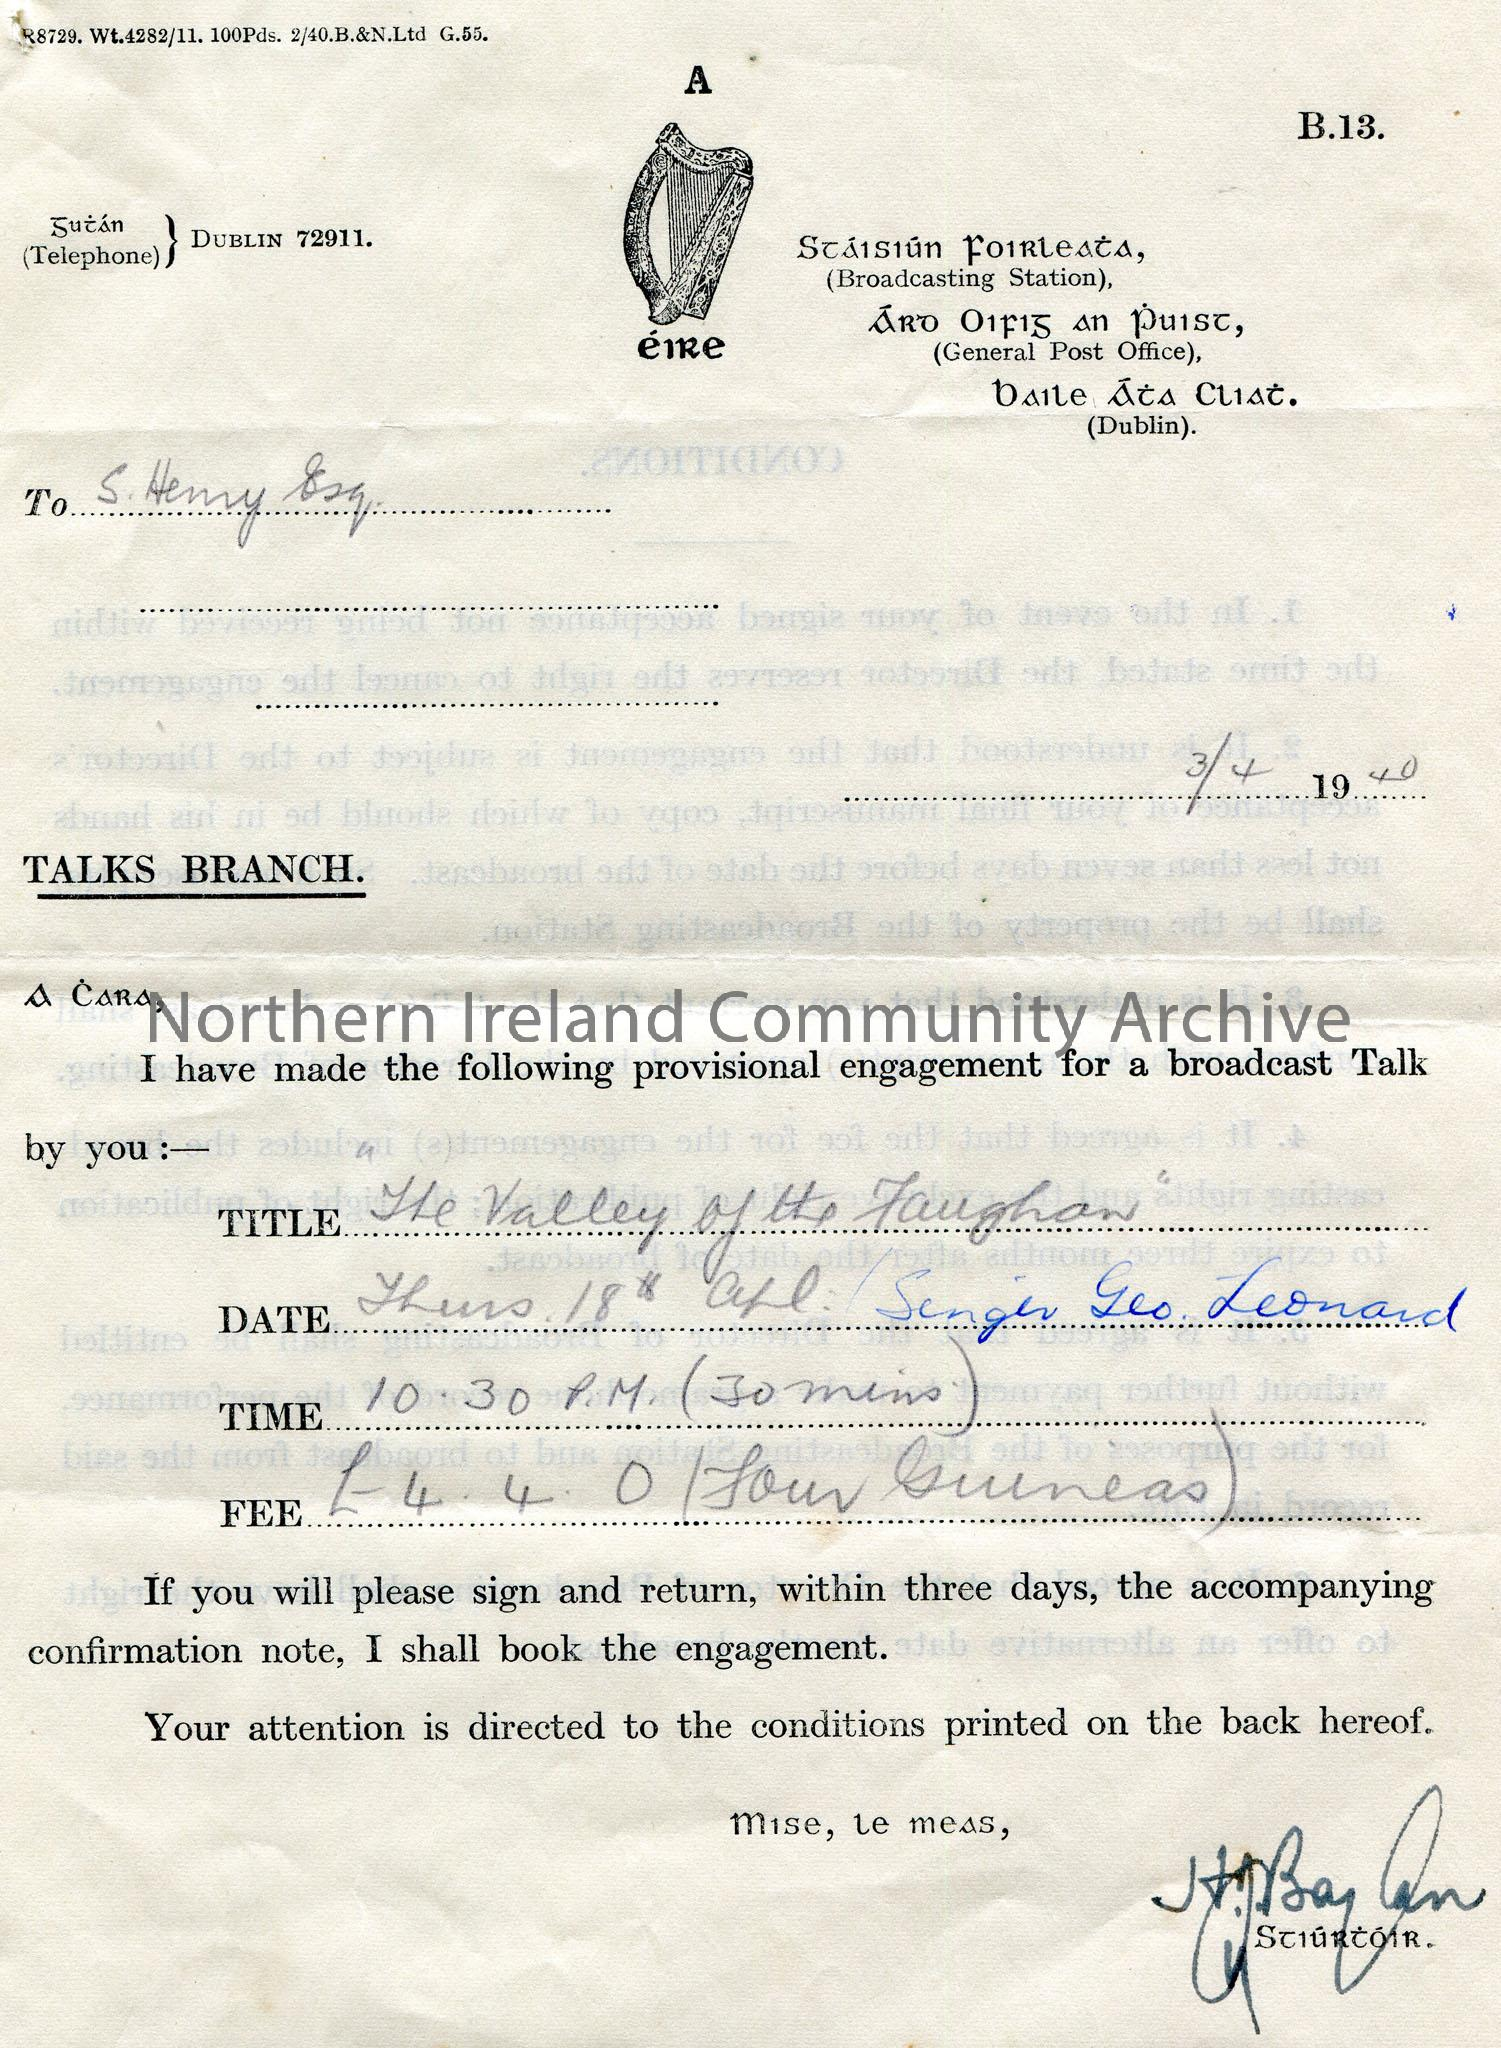 Letter from the Broadcasting Station, General Post Office, Dublin. Dated 3rd April, 1940. Titled Talks Branch. Requesting for an engagement for a broa…